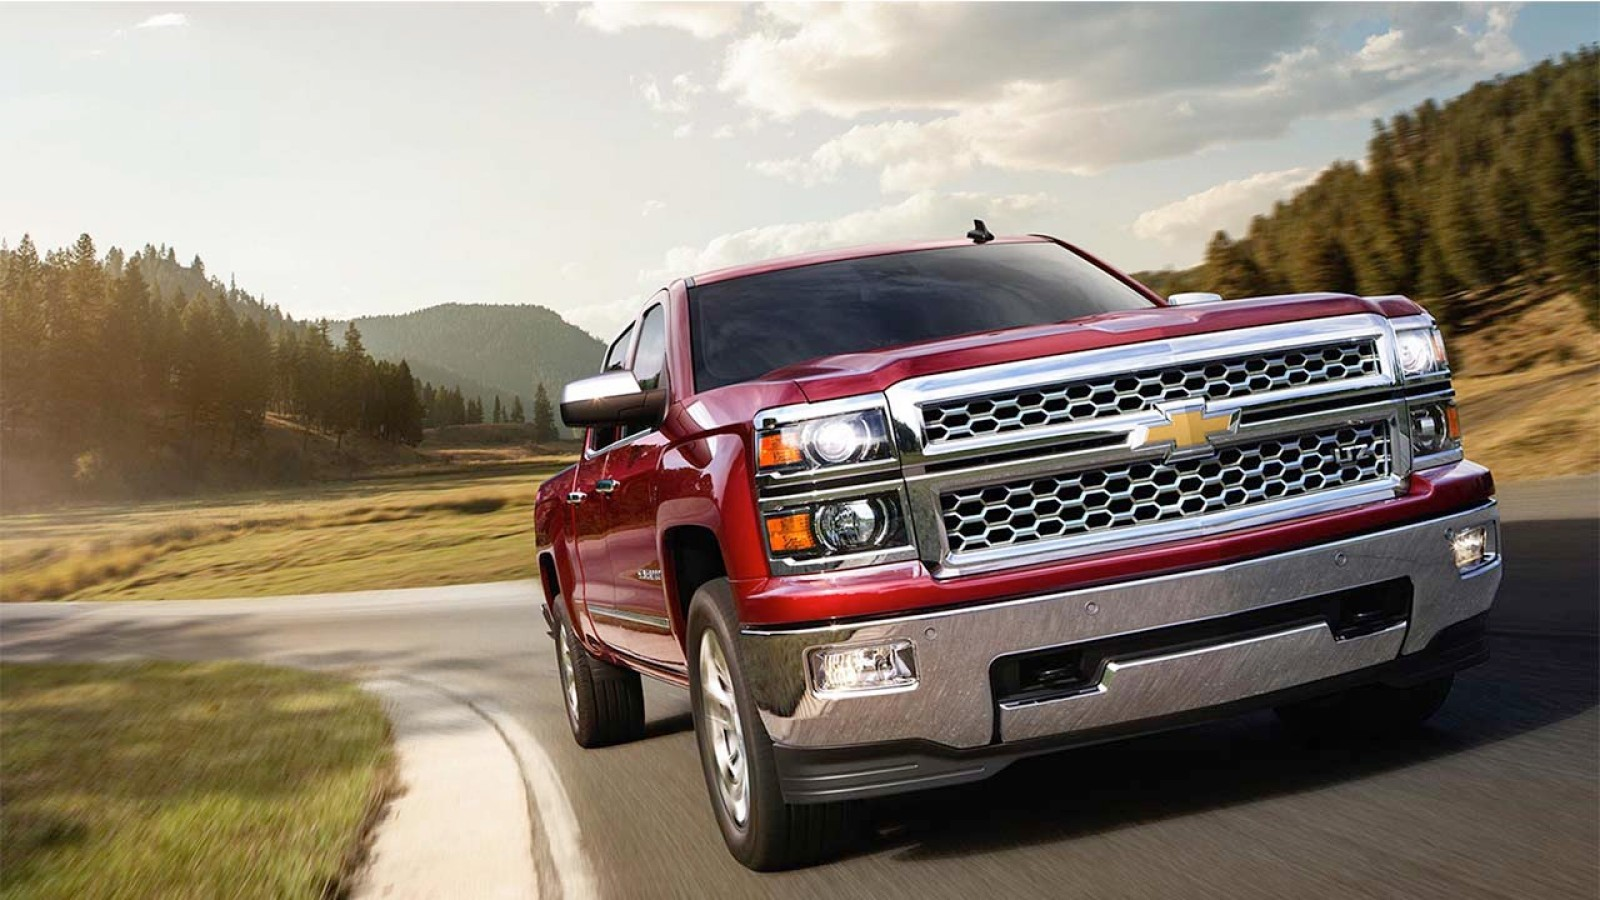 Pre-Owned Trucks for Sale near Burlington at Northwest Honda